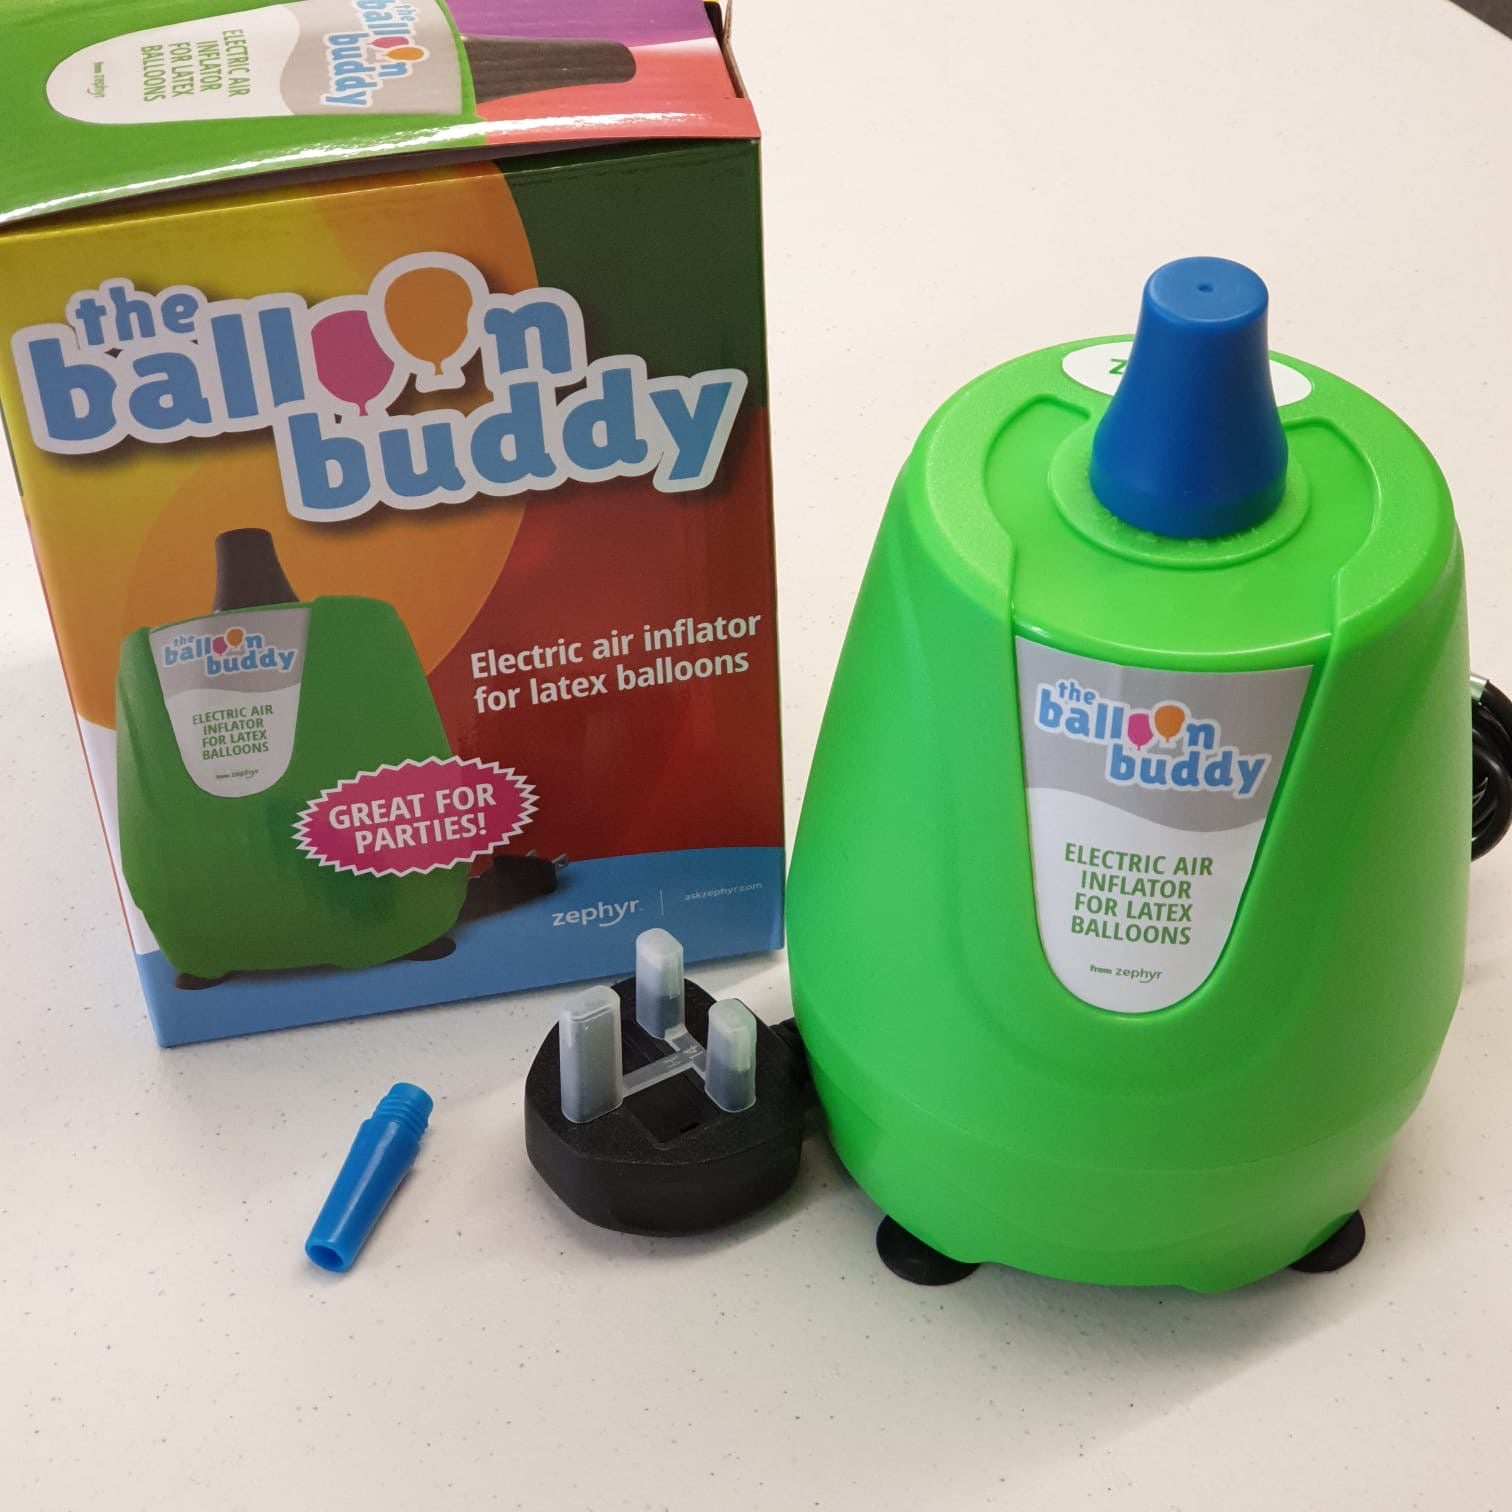 Balloon Buddy Electric Balloon Pump